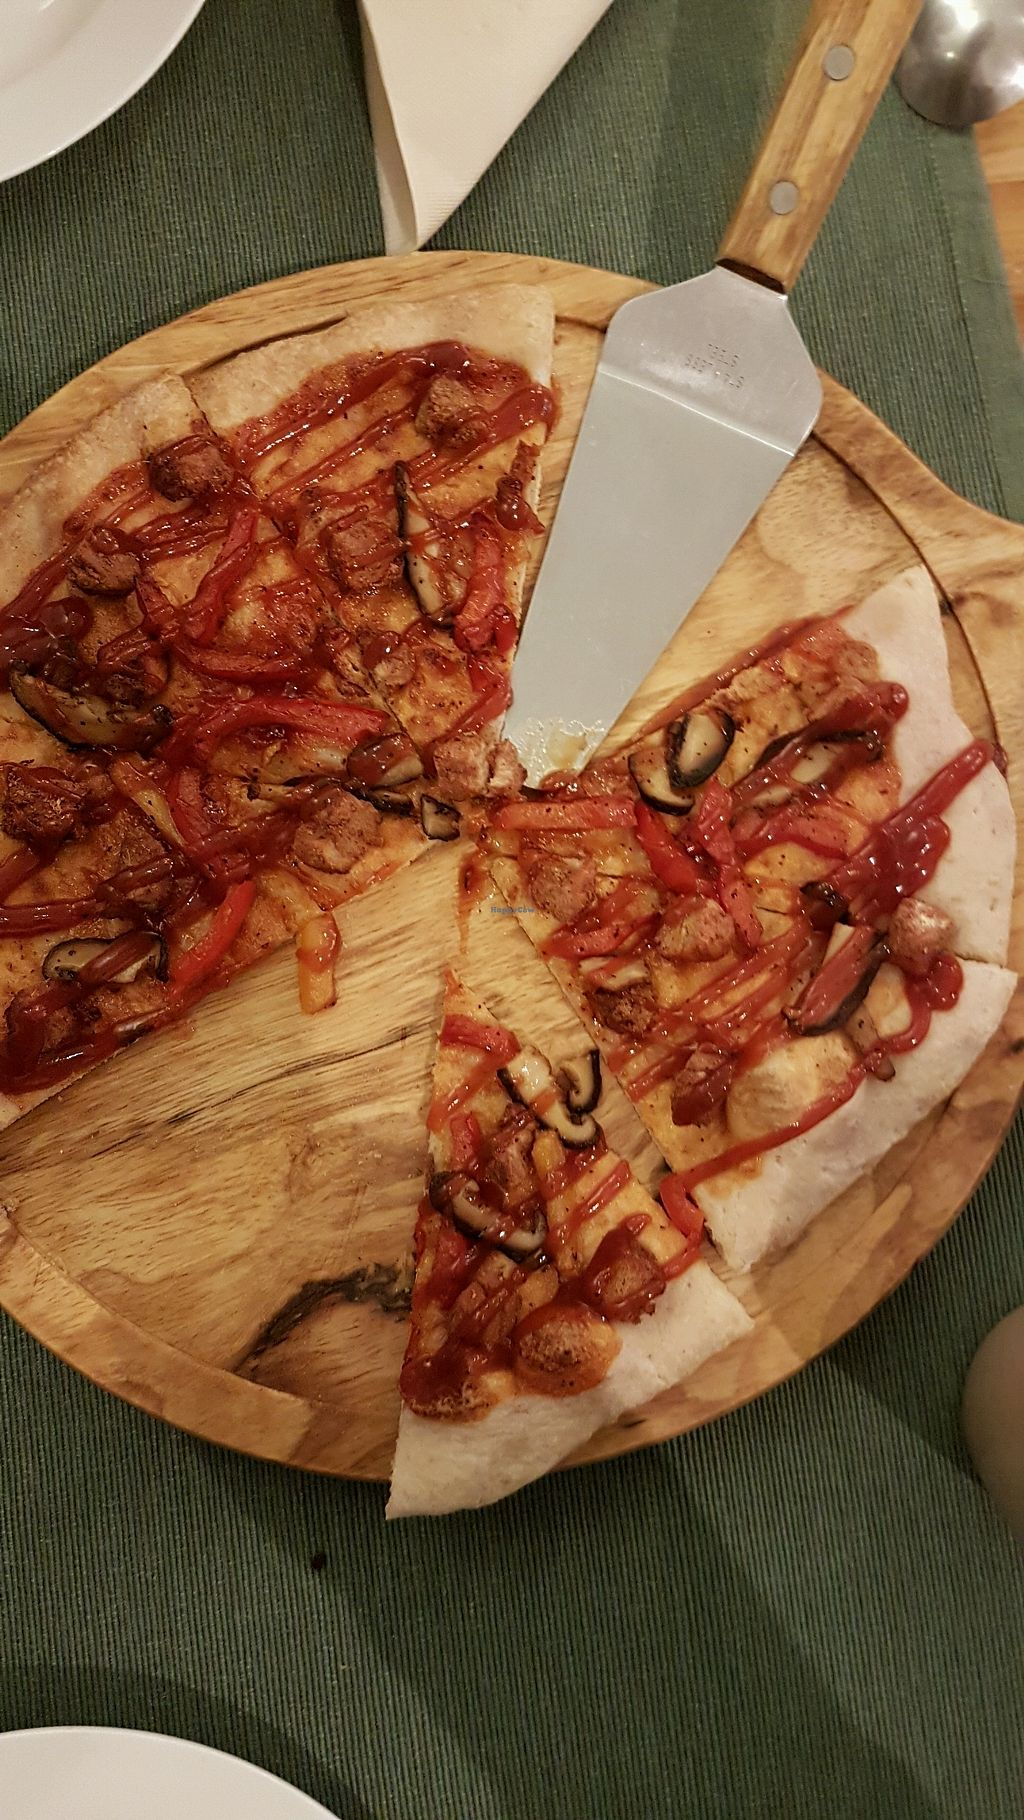 """Photo of Cloud Kitchen  by <a href=""""/members/profile/ElisabethF%C3%A9line"""">ElisabethFéline</a> <br/>Land barbecue pizza <br/> April 7, 2018  - <a href='/contact/abuse/image/64283/381770'>Report</a>"""